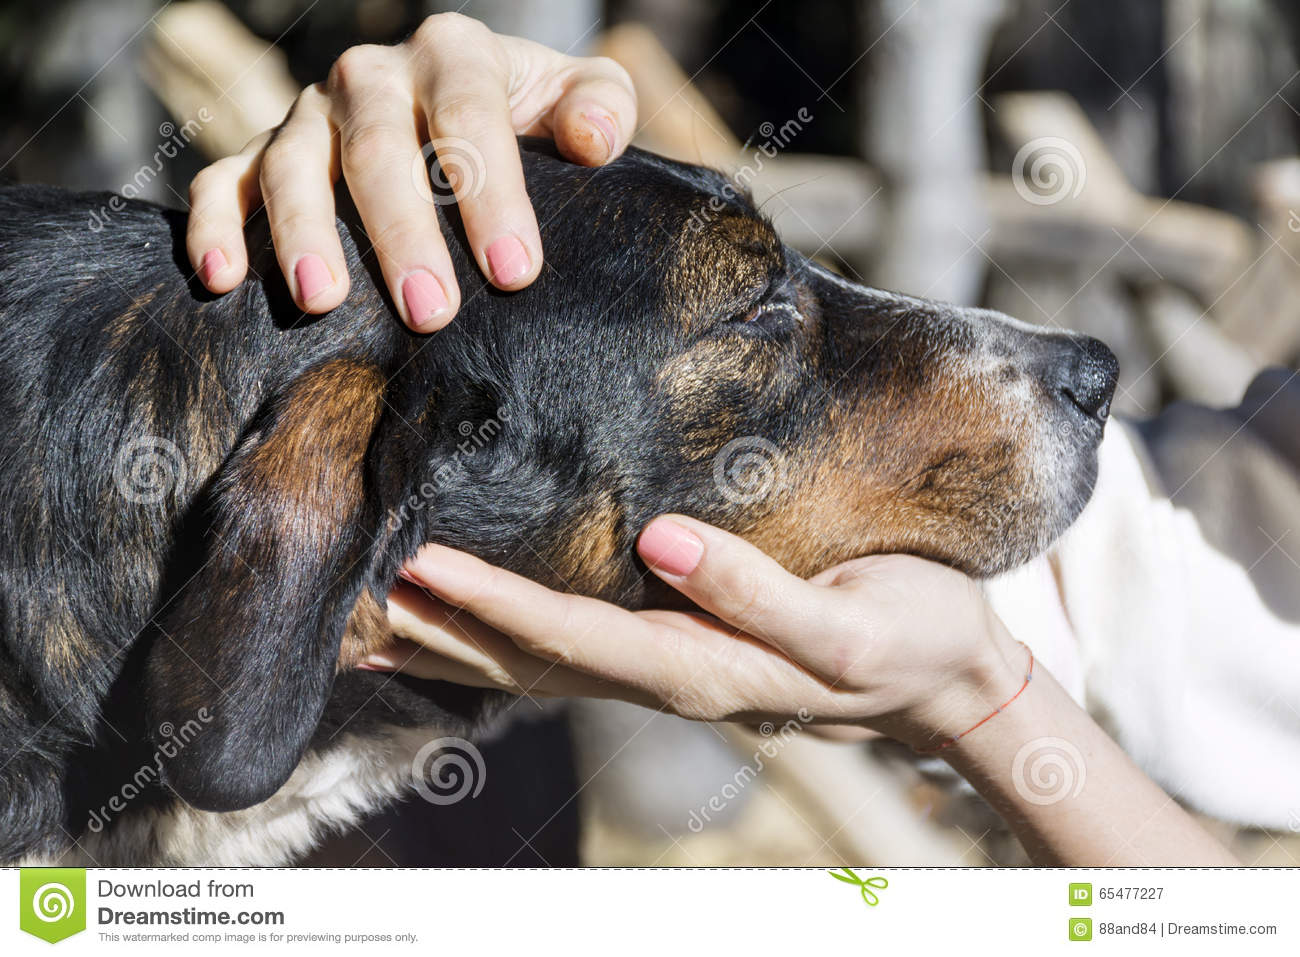 Woman hands fondle a homeless dog